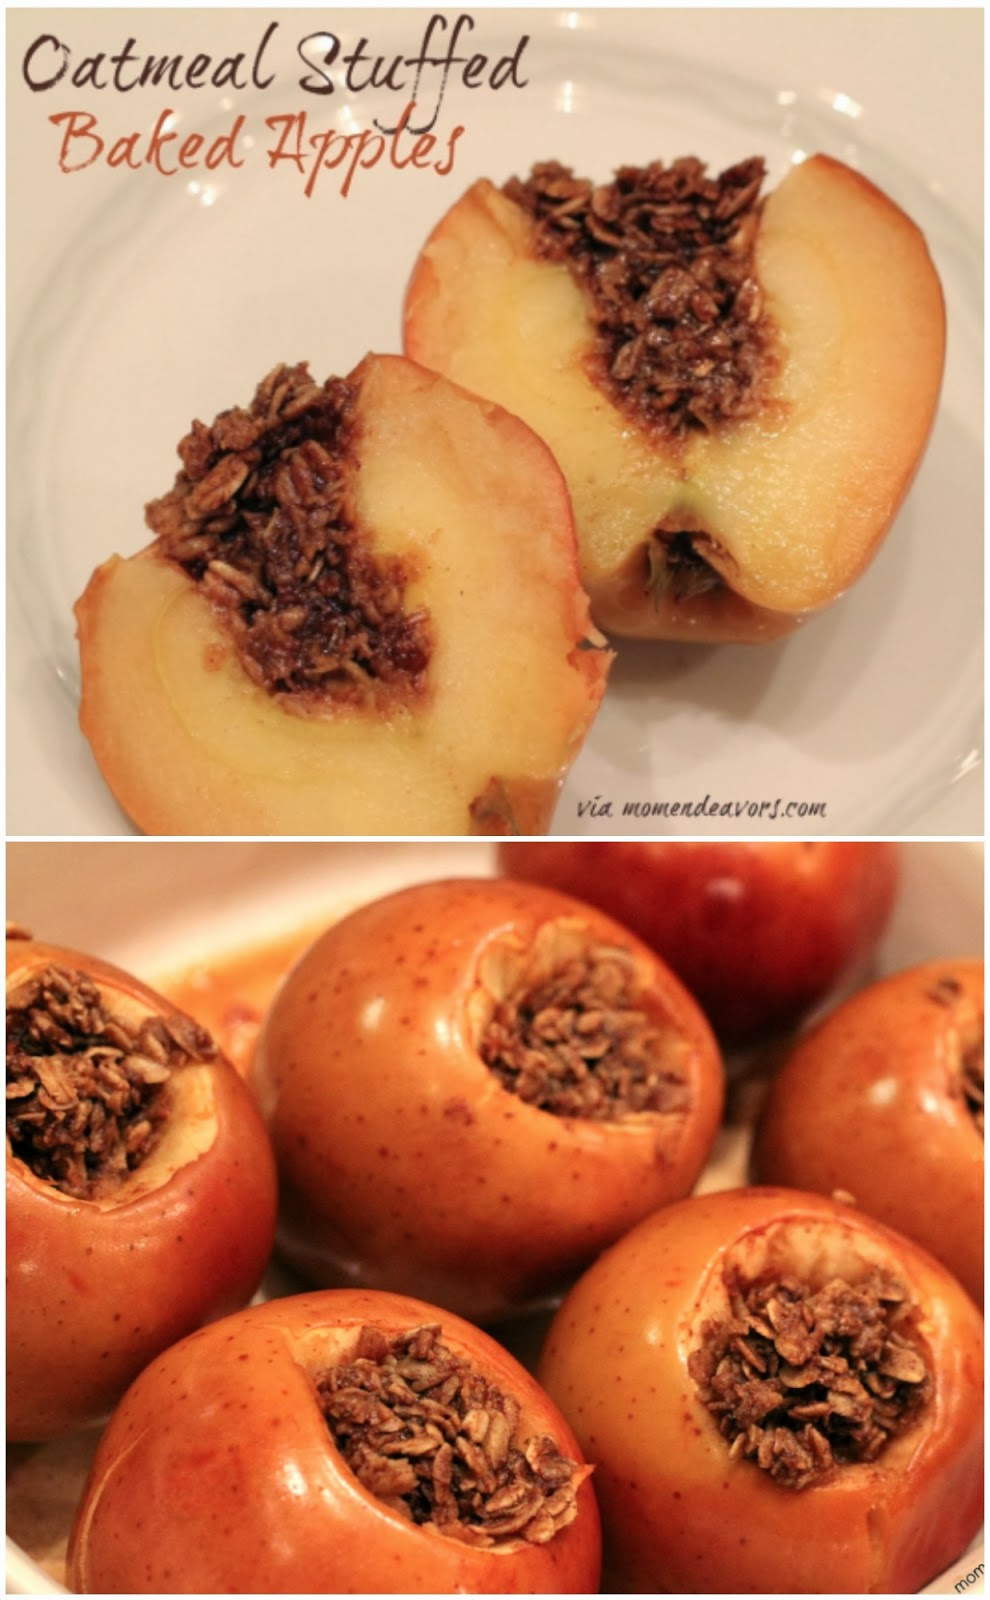 Oatmeal Stuffed Baked Apples